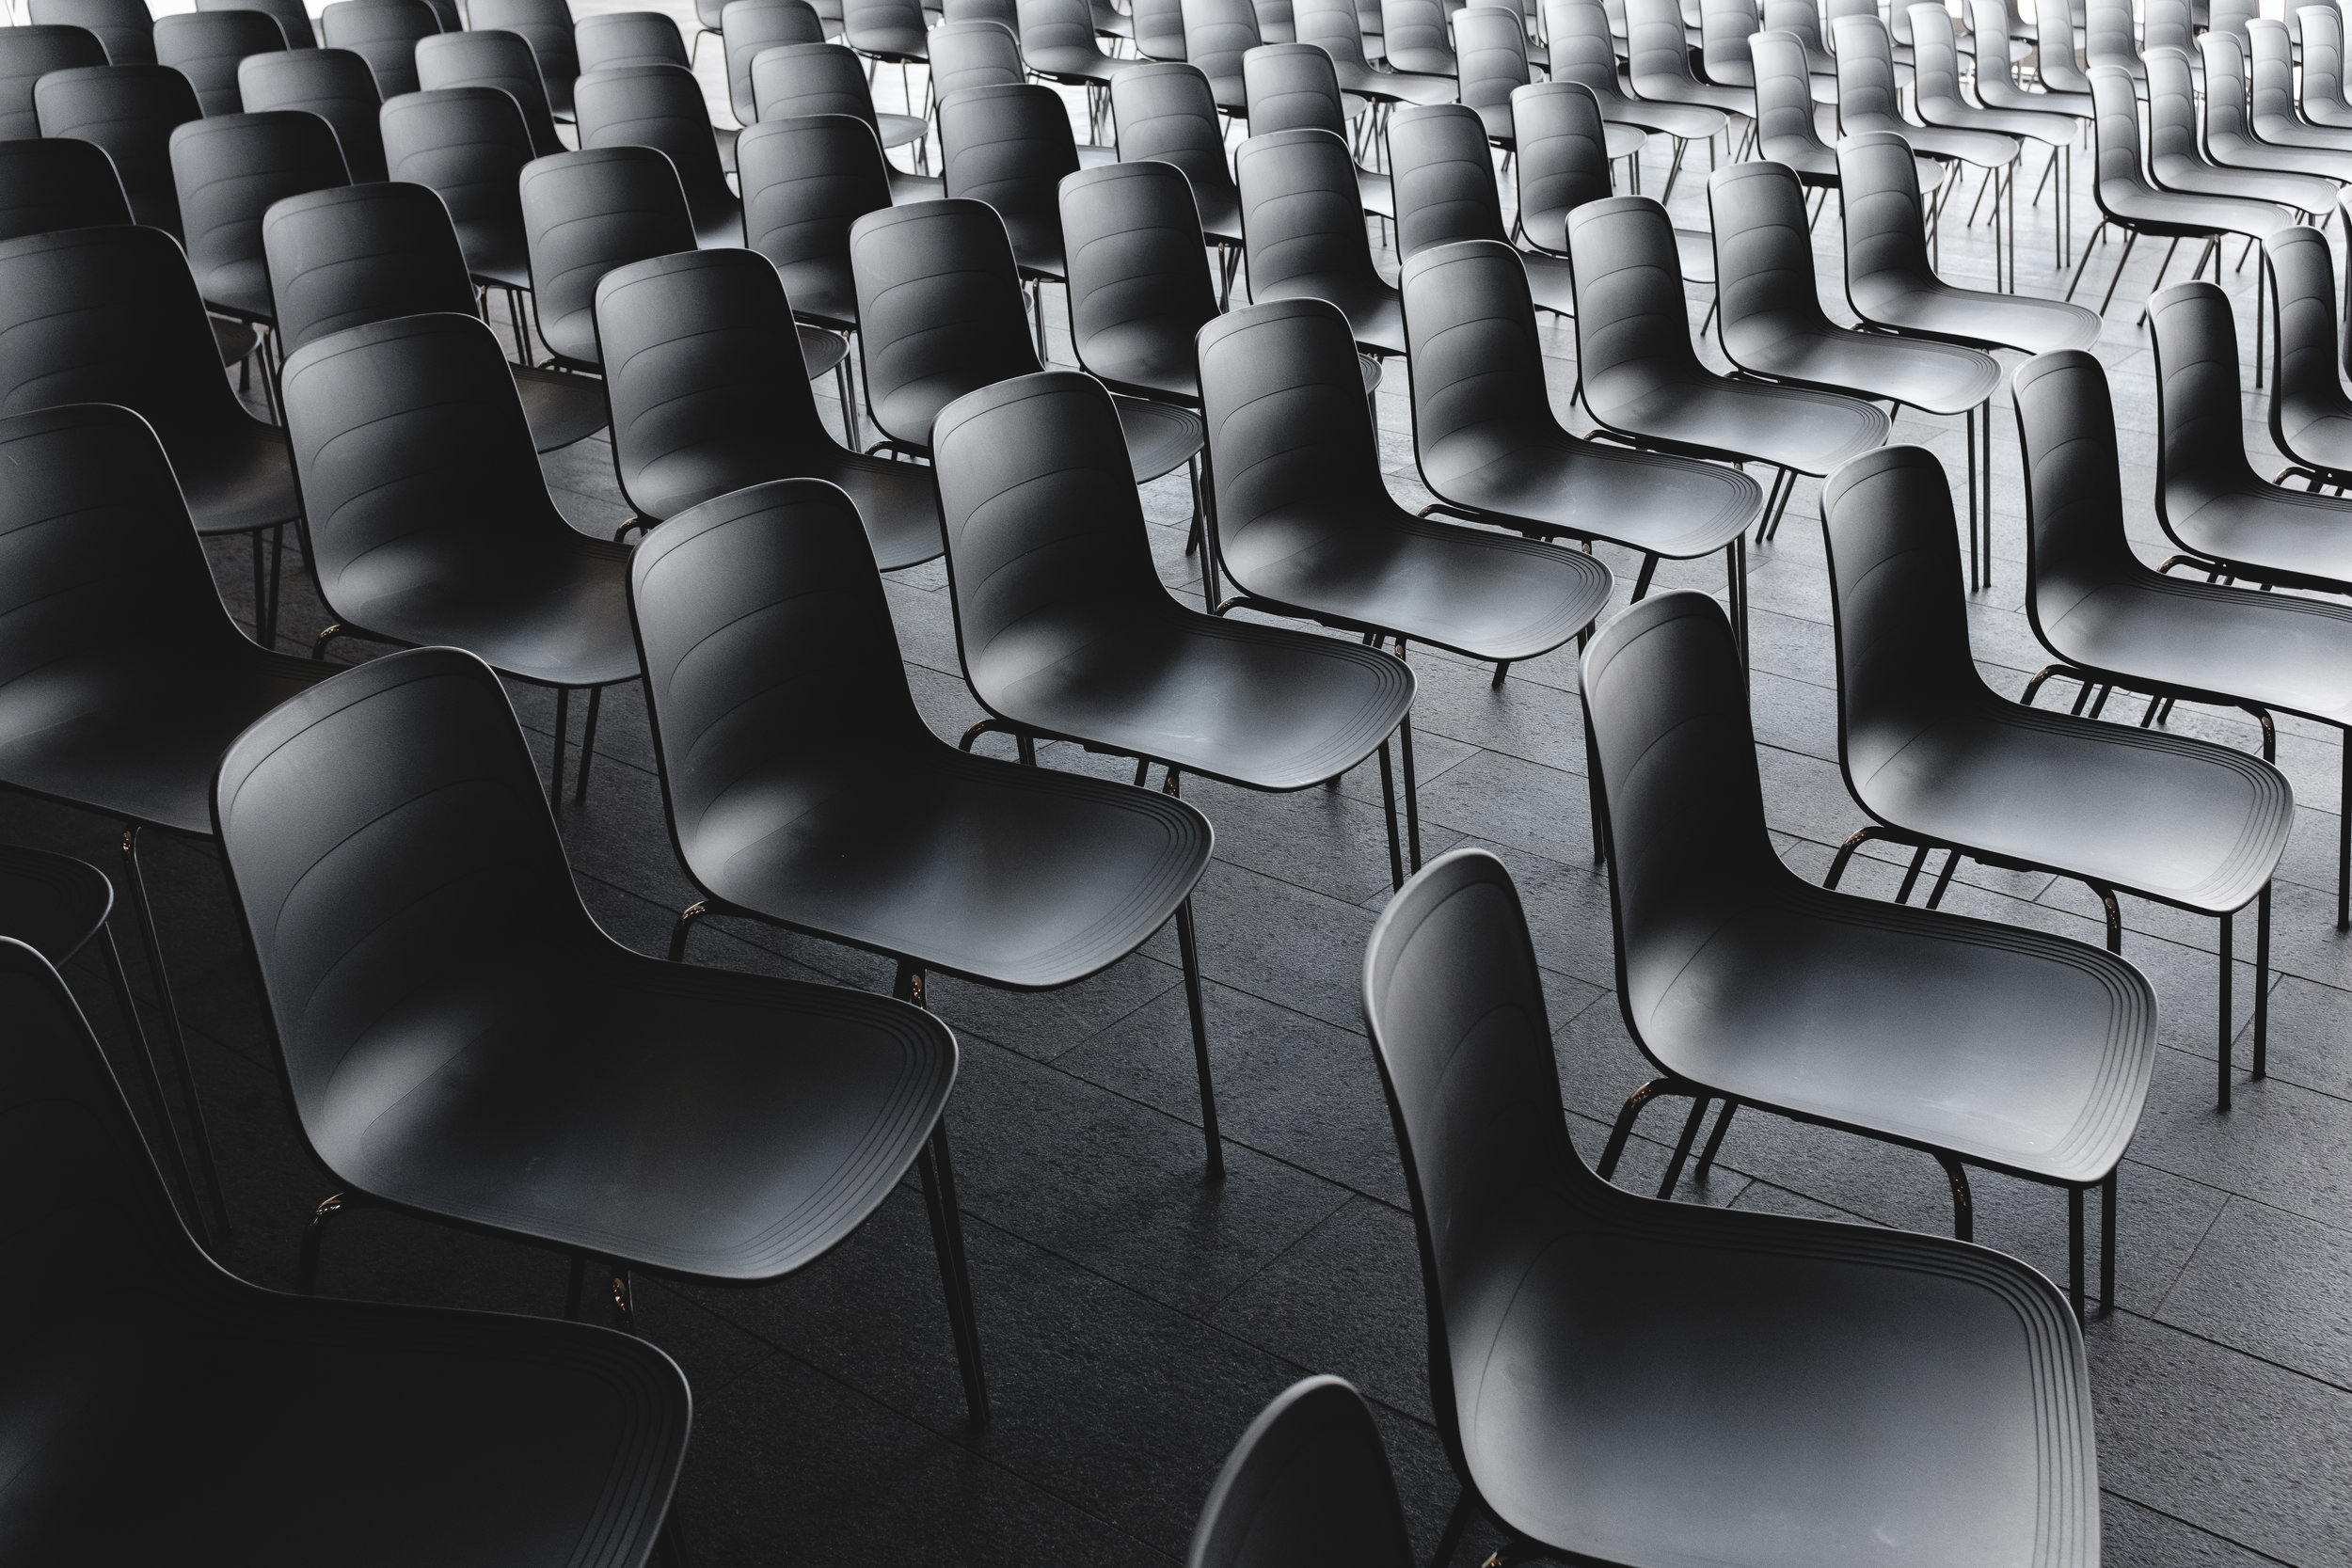 Education - Photo by Jonas Jacobsson on Unsplash. [IMAGE DESCRIPTION: the photo is black and white and the only contents of the image of rows of empty chairs that are organized what appears to be an auditorium.]